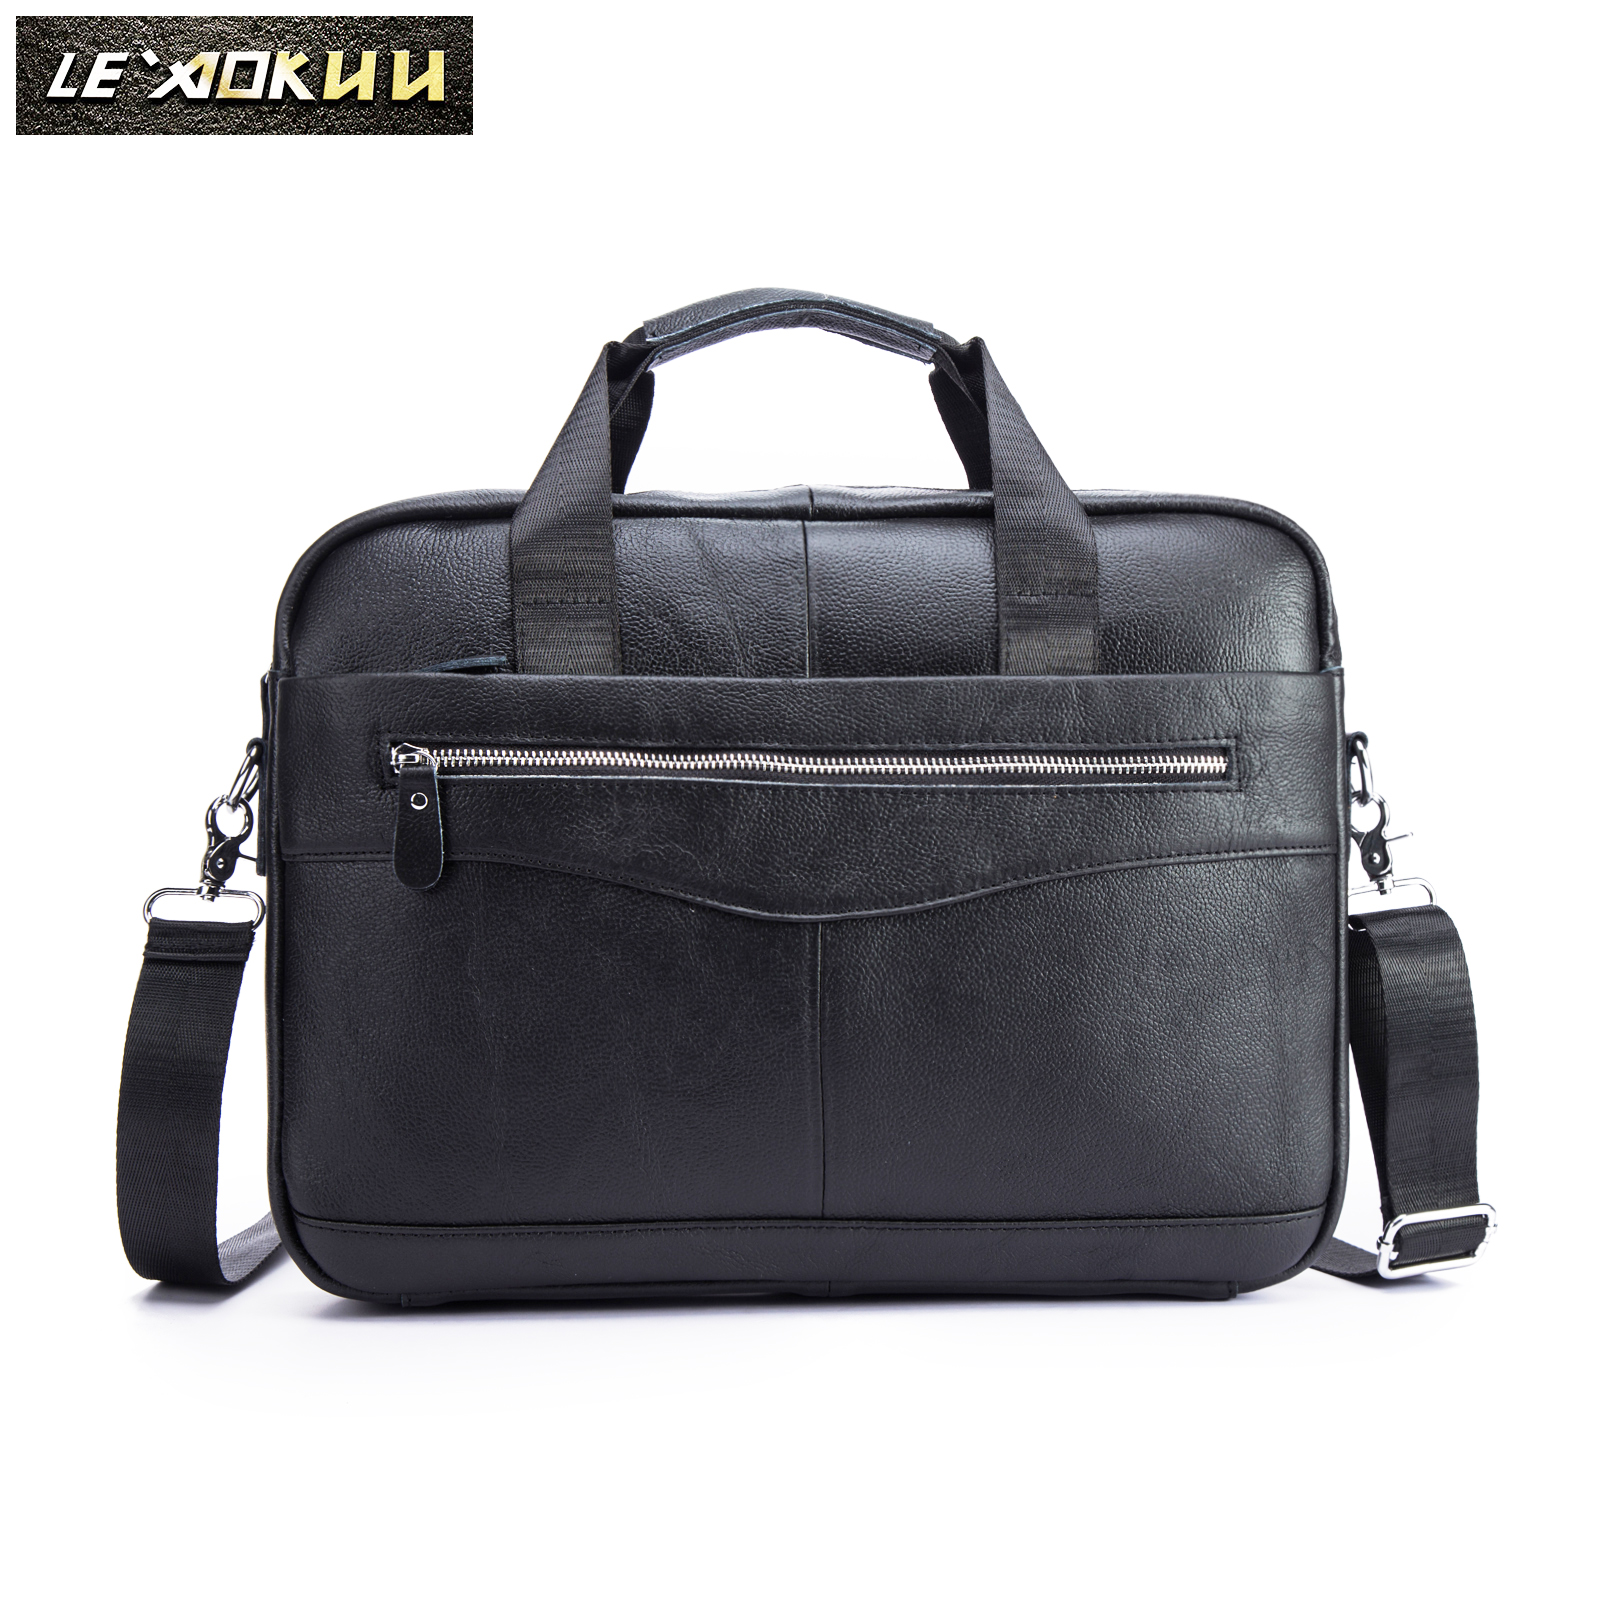 Men Genuine Leather Vintage Fashion Travel Briefcase Business 15.6 Laptop Case Design Attache Messenger Bag Portfolio 1118bMen Genuine Leather Vintage Fashion Travel Briefcase Business 15.6 Laptop Case Design Attache Messenger Bag Portfolio 1118b